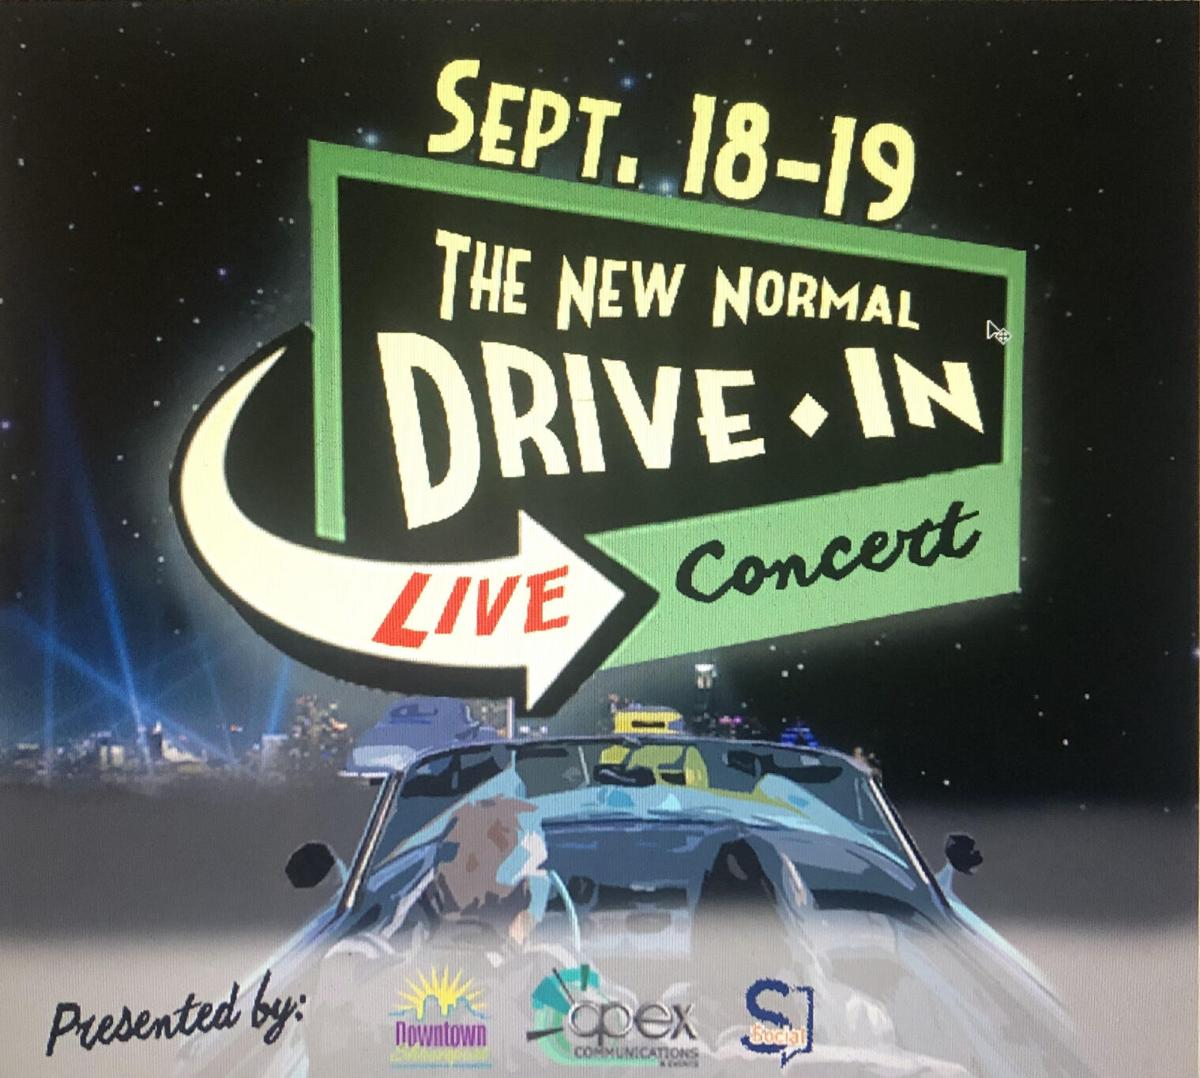 The New Normal Drive-In